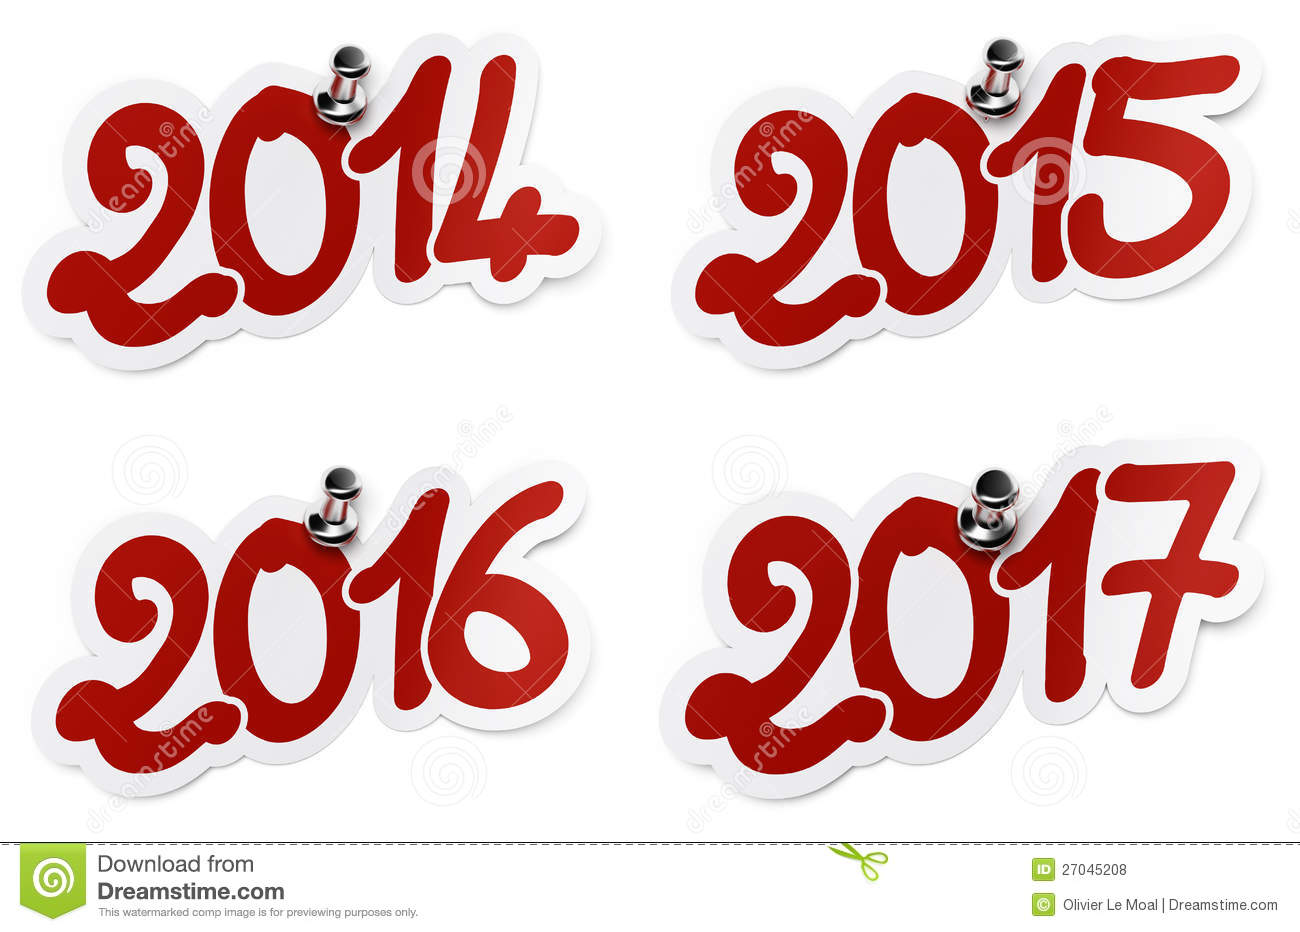 2014, 2015, 2016, 2017 Year Stickers Royalty Free Stock Photos ...